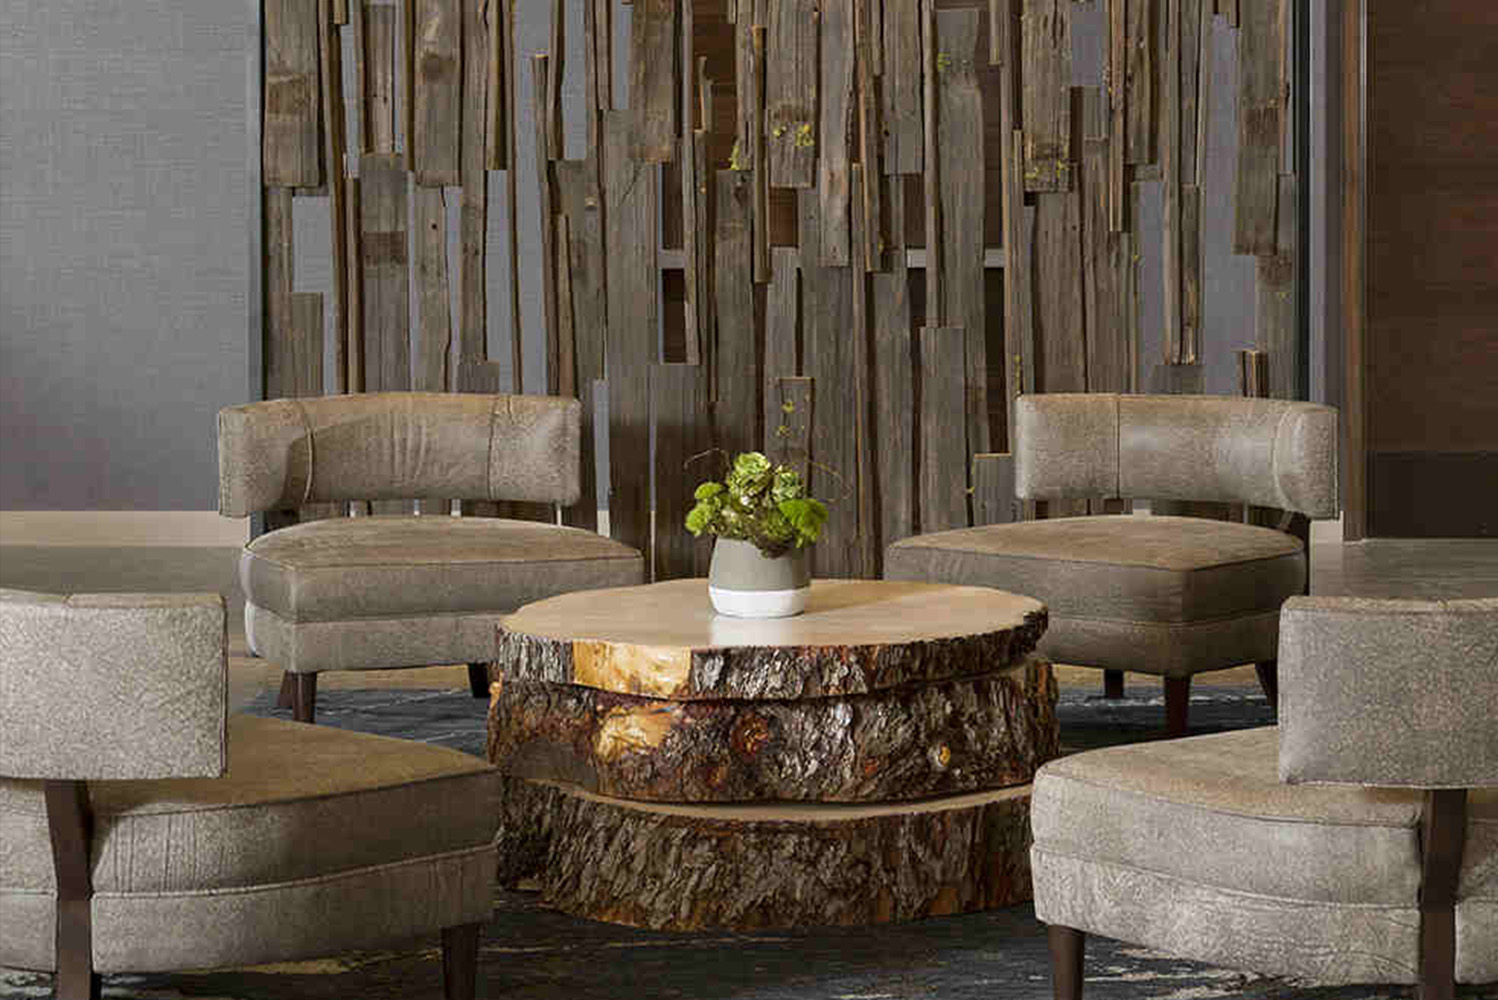 There are stone fireplaces and leather furniture to allow guests to enjoy views of the lake.